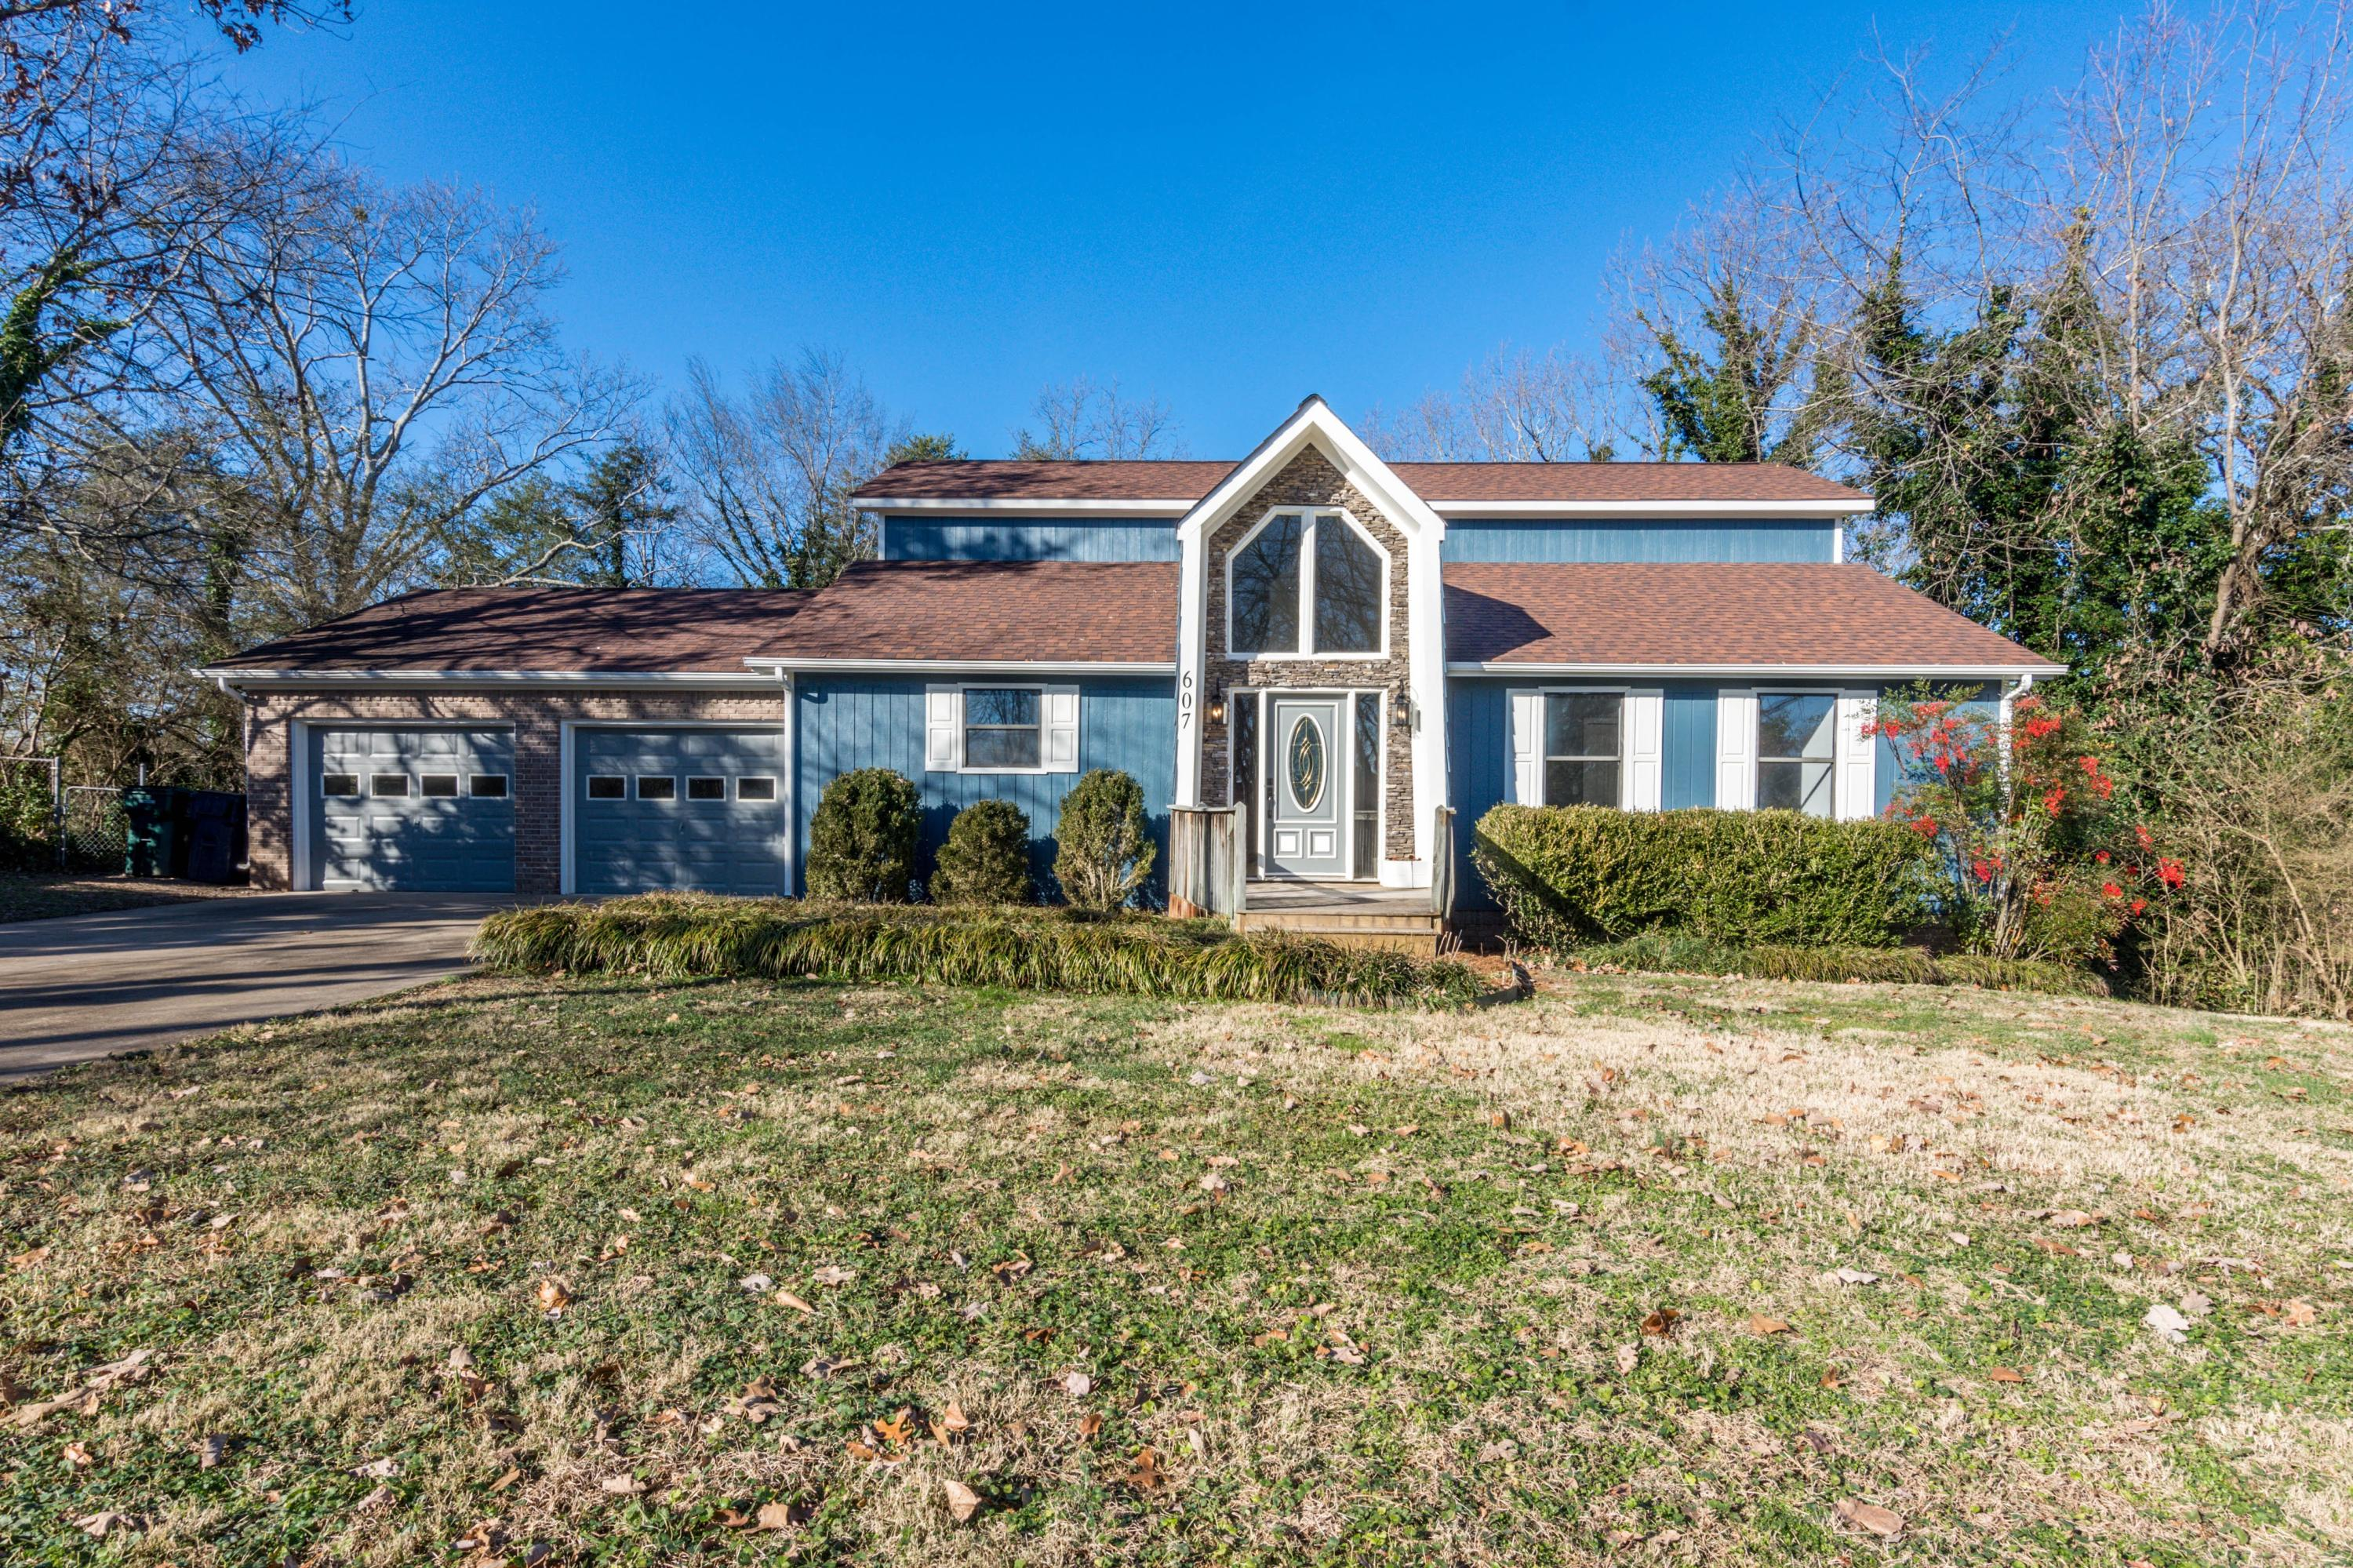 607 Timber Ridge Dr, Hixson, TN 37343